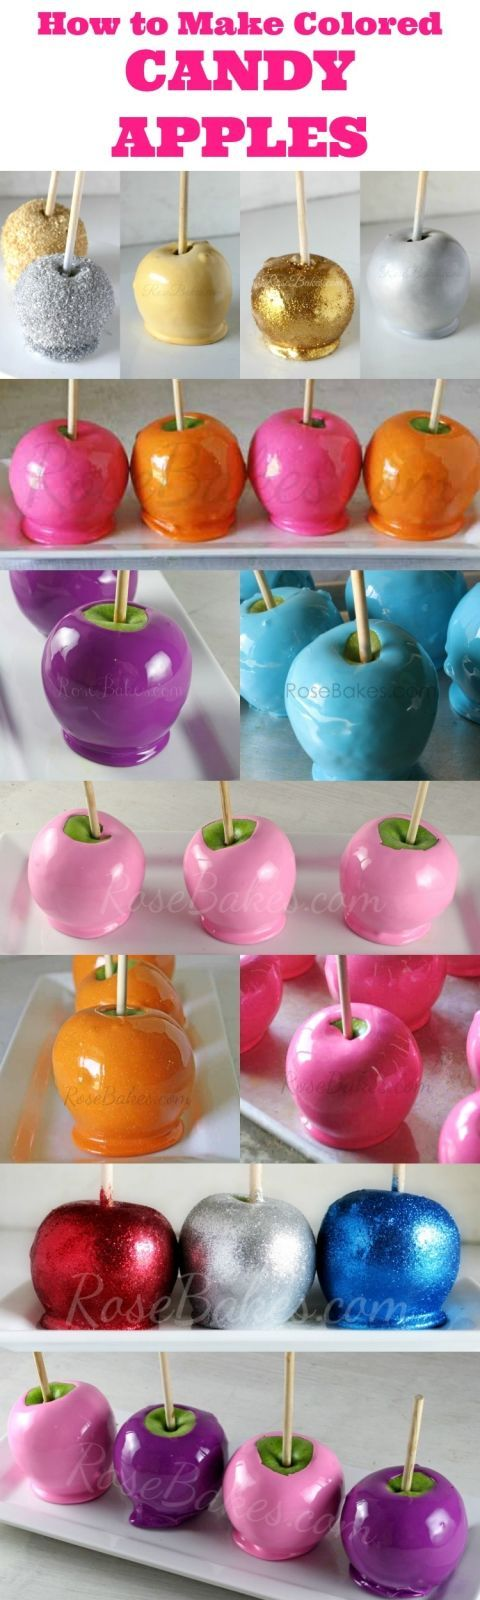 épinglé par ❃❀CM❁✿How to Make Colored Candy Apples would be cool to do this fall!